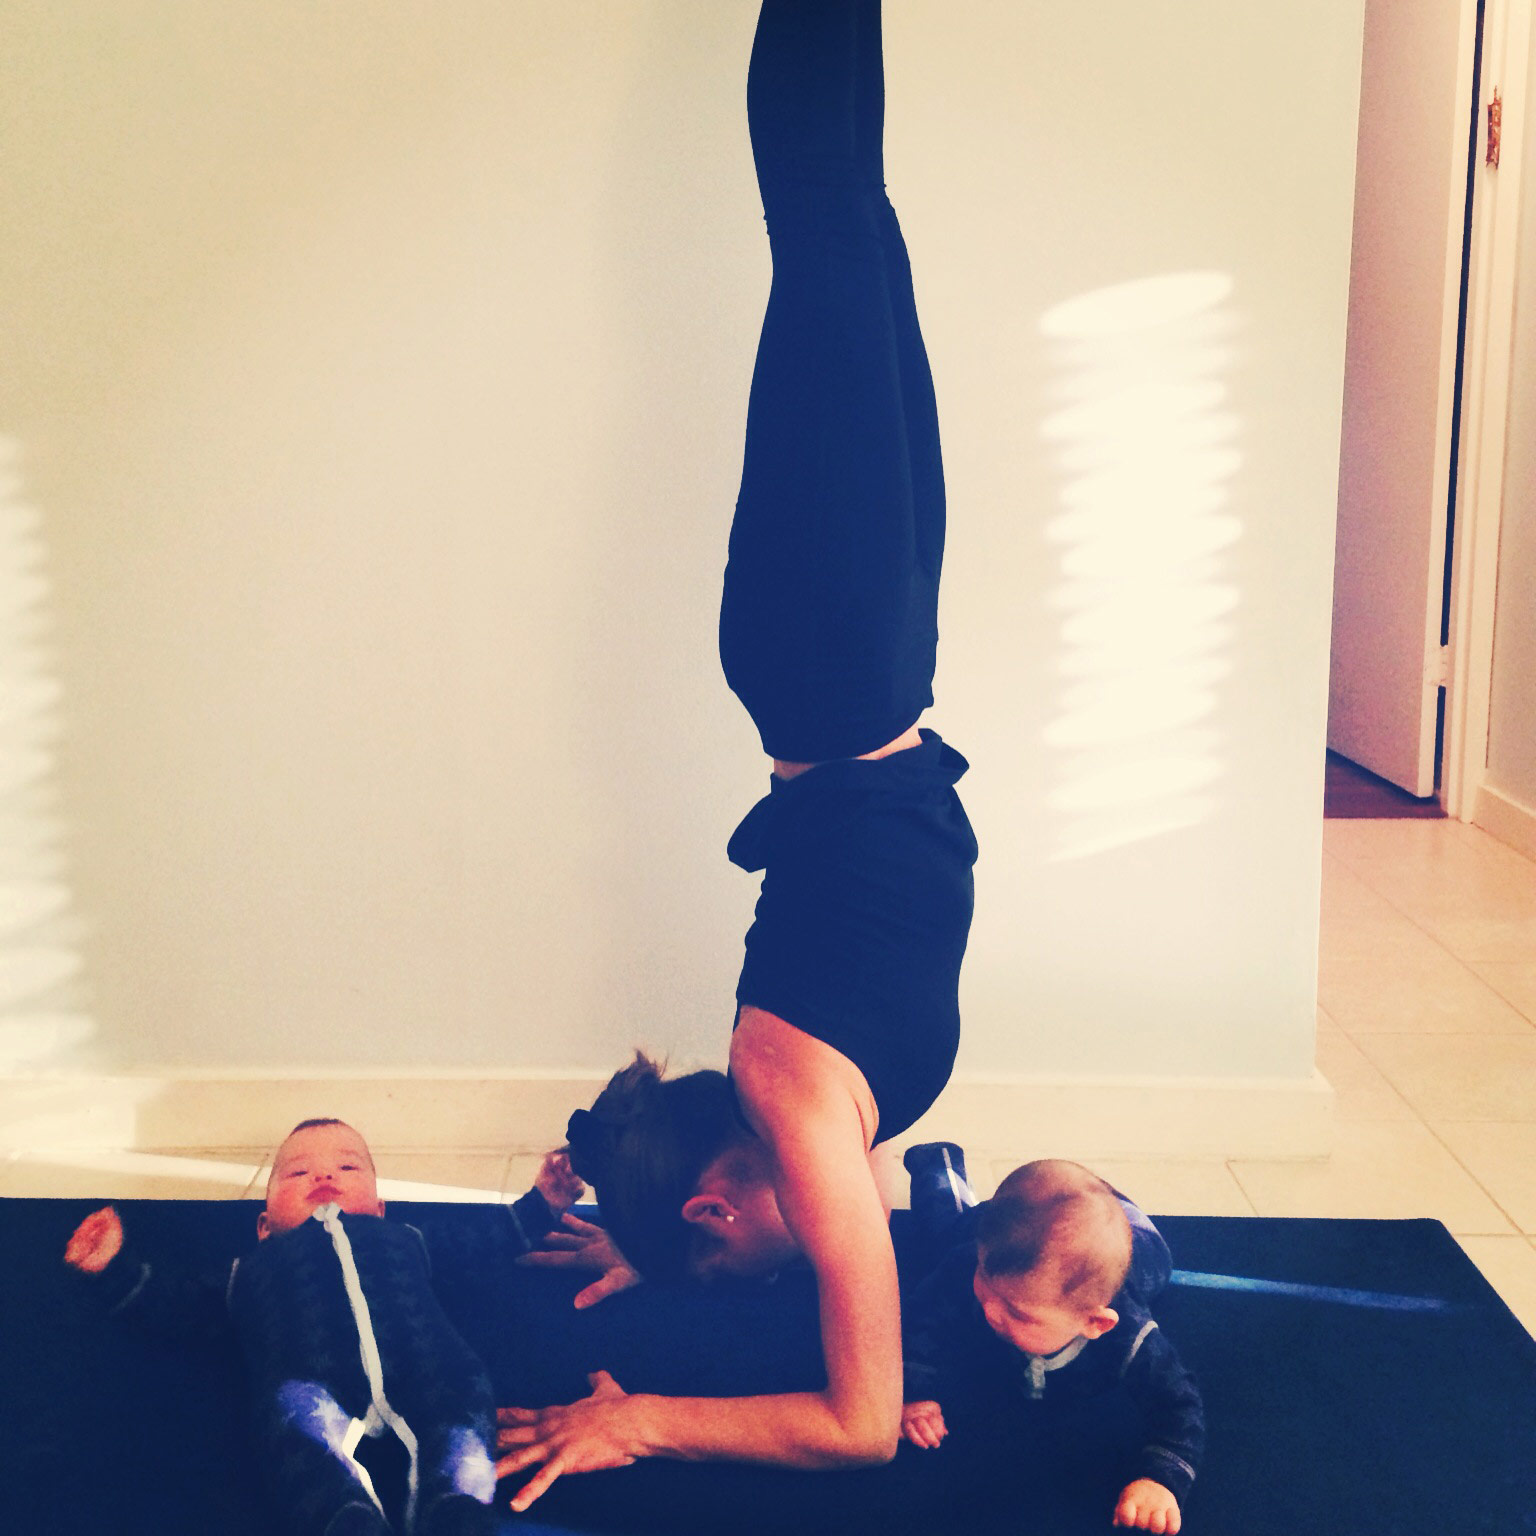 goldie oren doing yoga handstand with infants